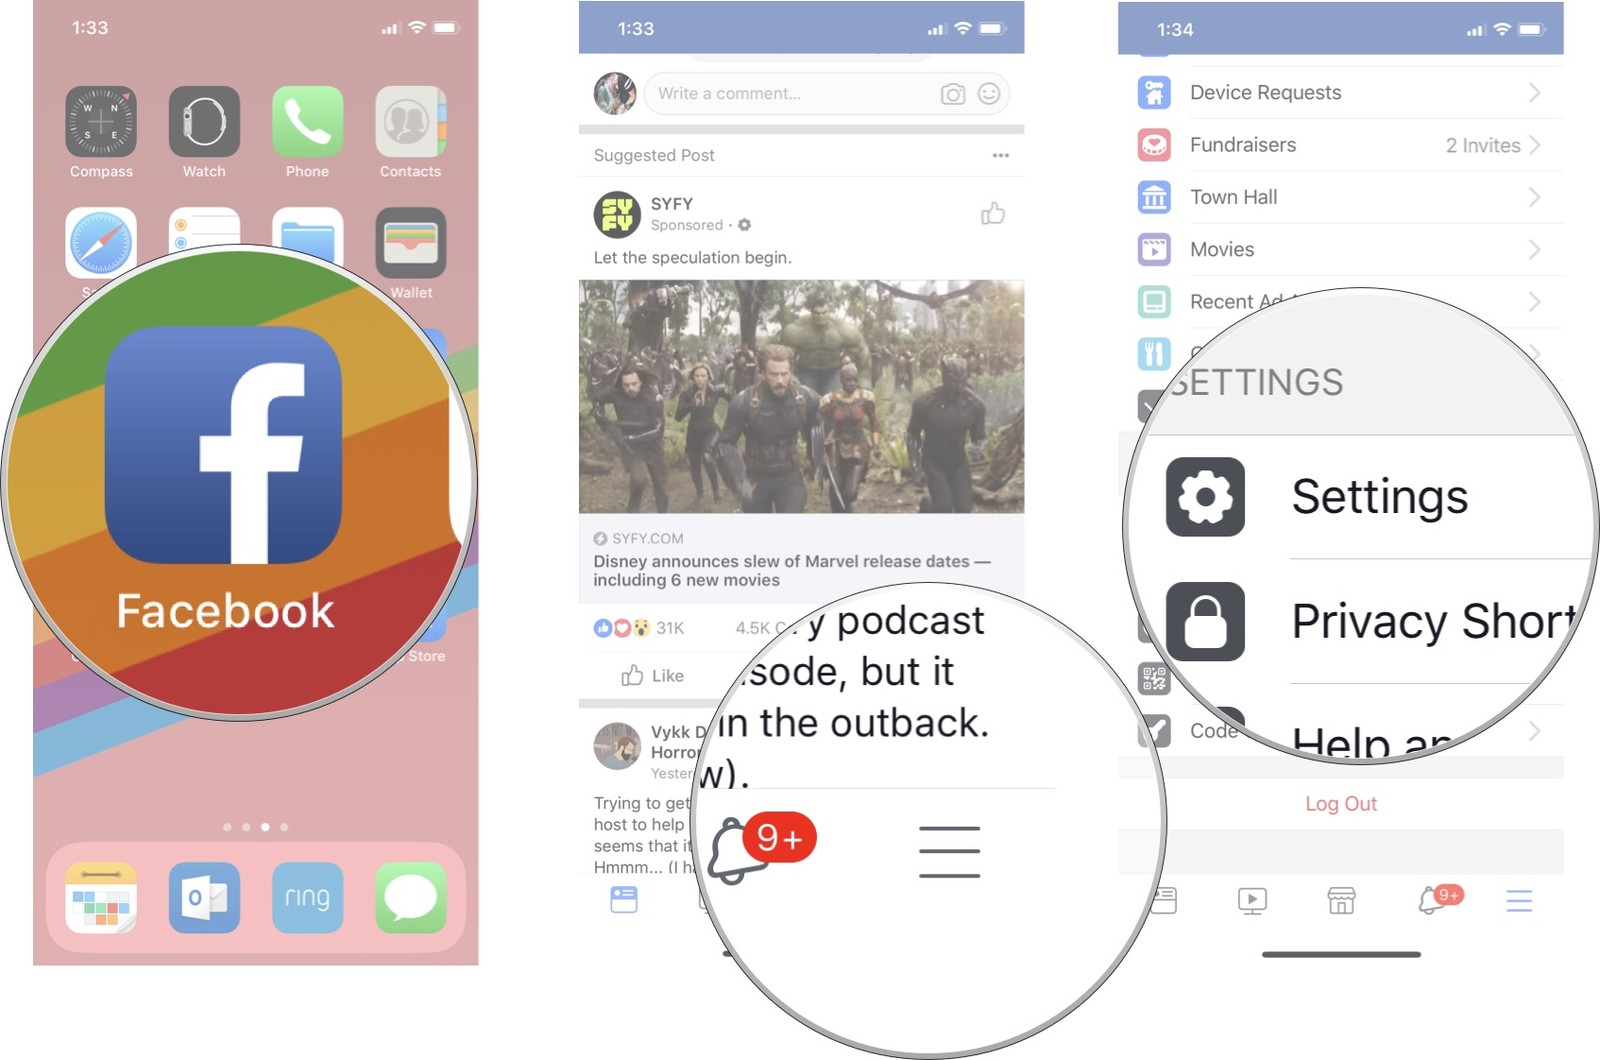 How To Stop Facebook From Tracking Your Location?